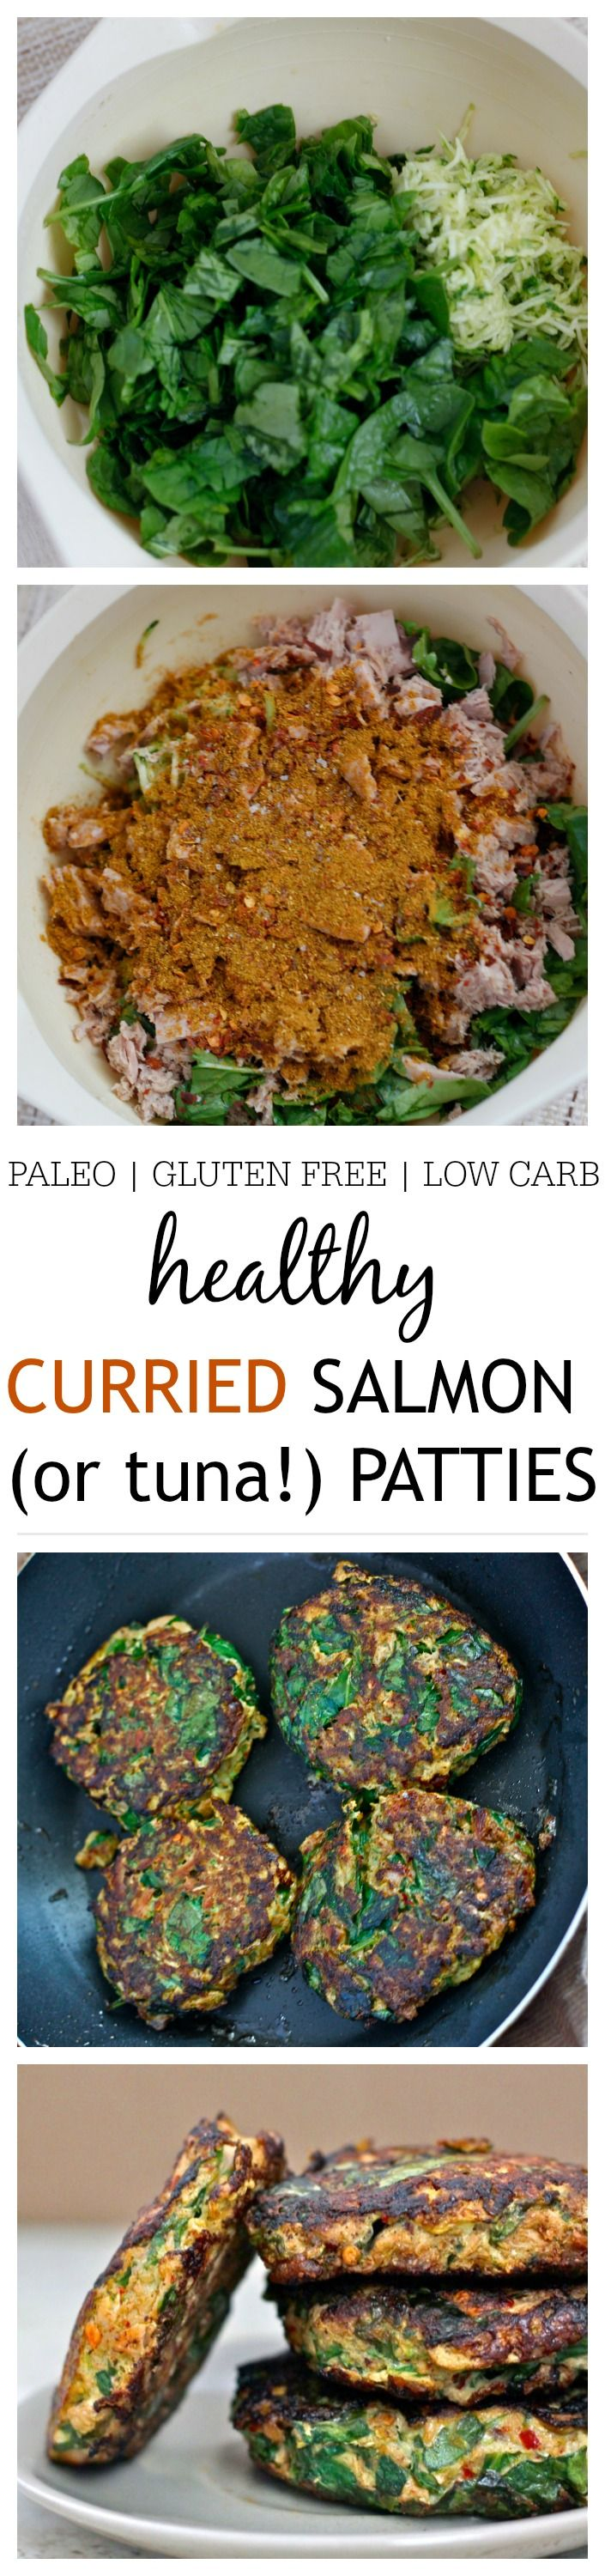 Paleo Curried Salmon (or tuna!) Patties- Just ten minutes is all you'll need to whip up these Curried Salmon (or tuna!) patties- No fancy ingredients and chock full of veggies, these patties are paleo, gluten free, grain free and low carb- You'd never believe these beauties started out from a can! @thebigmansworld -thebigmansworld.com